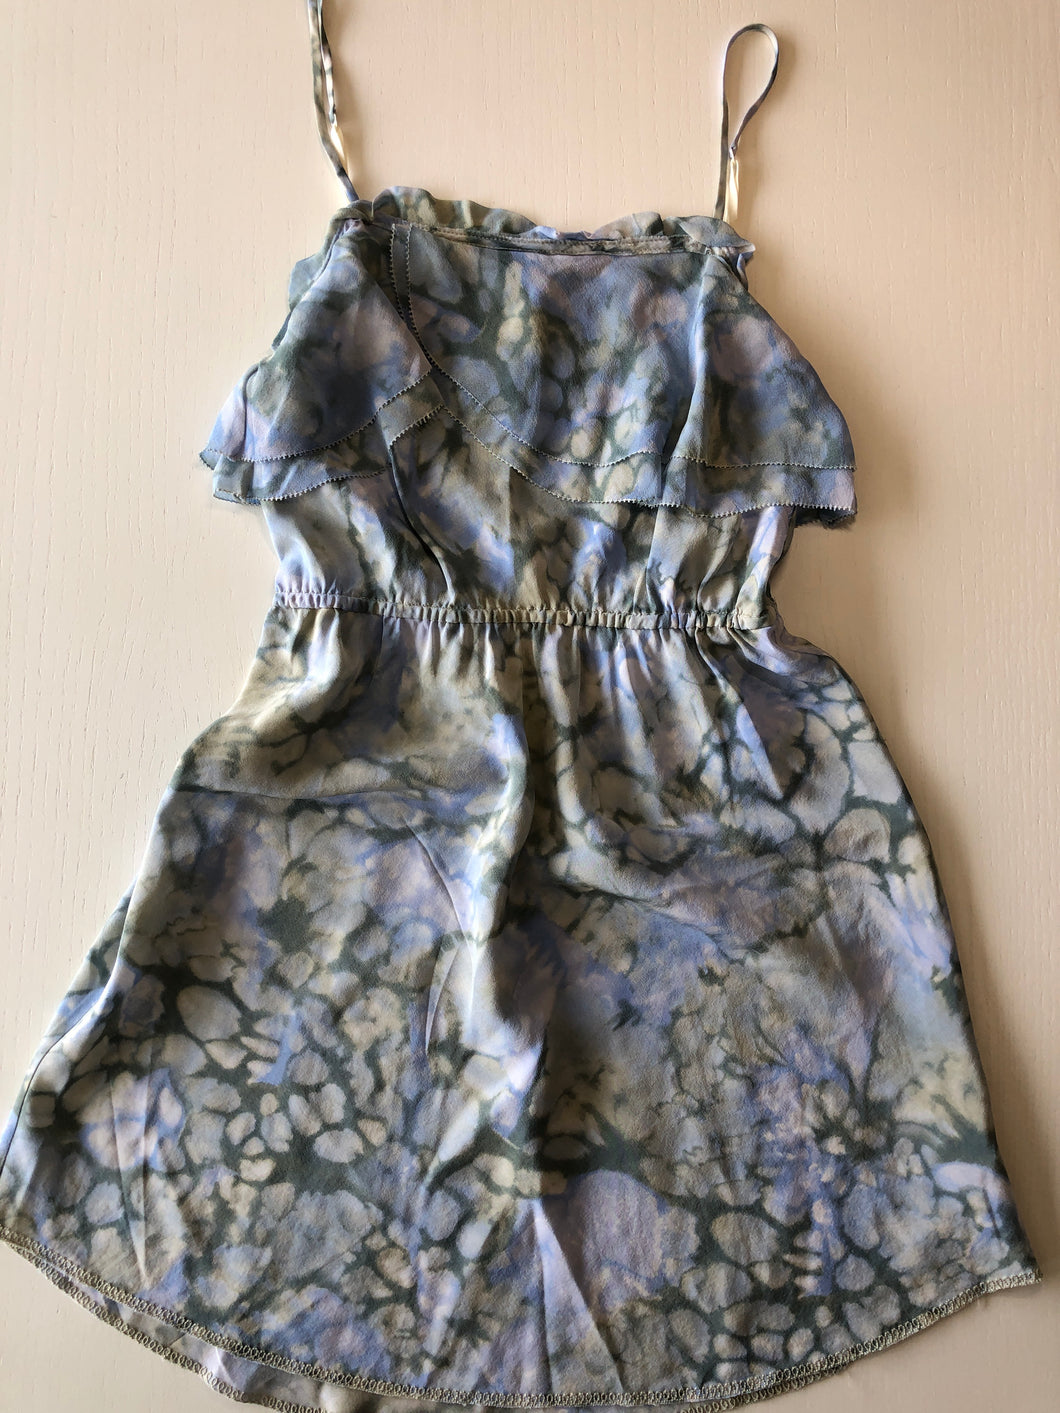 Gently Used Women's Wilfred Dress Size XS